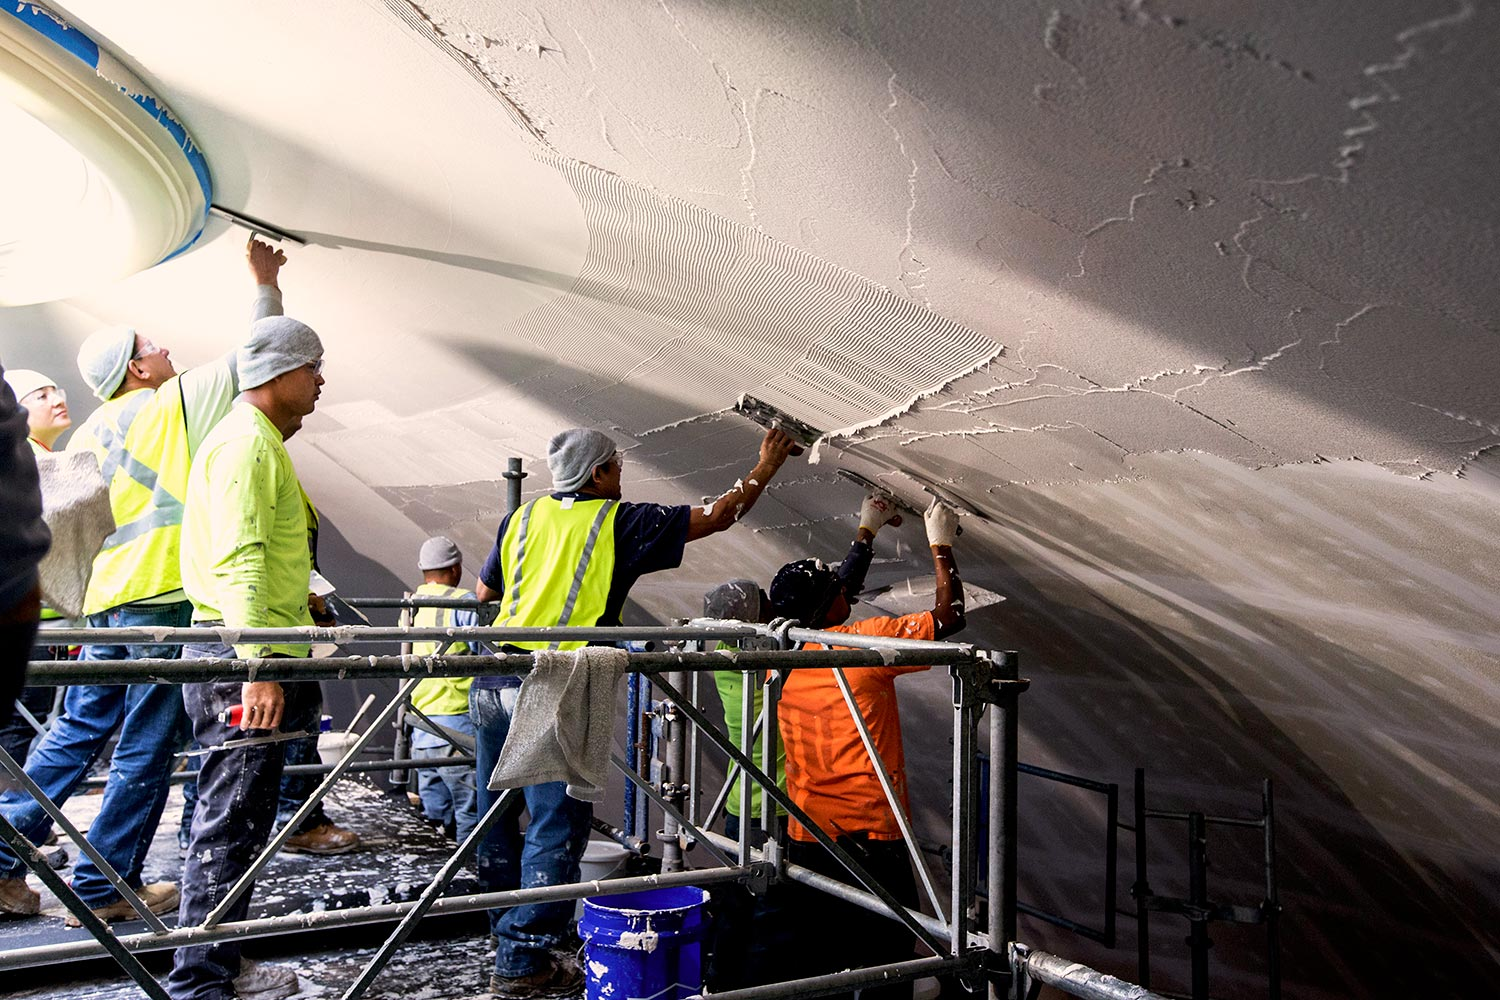 Employees of Interior Specialty Construction, Inc. of Providence Forge, slather plaster on the ceiling of the Rotunda's Dome Room.